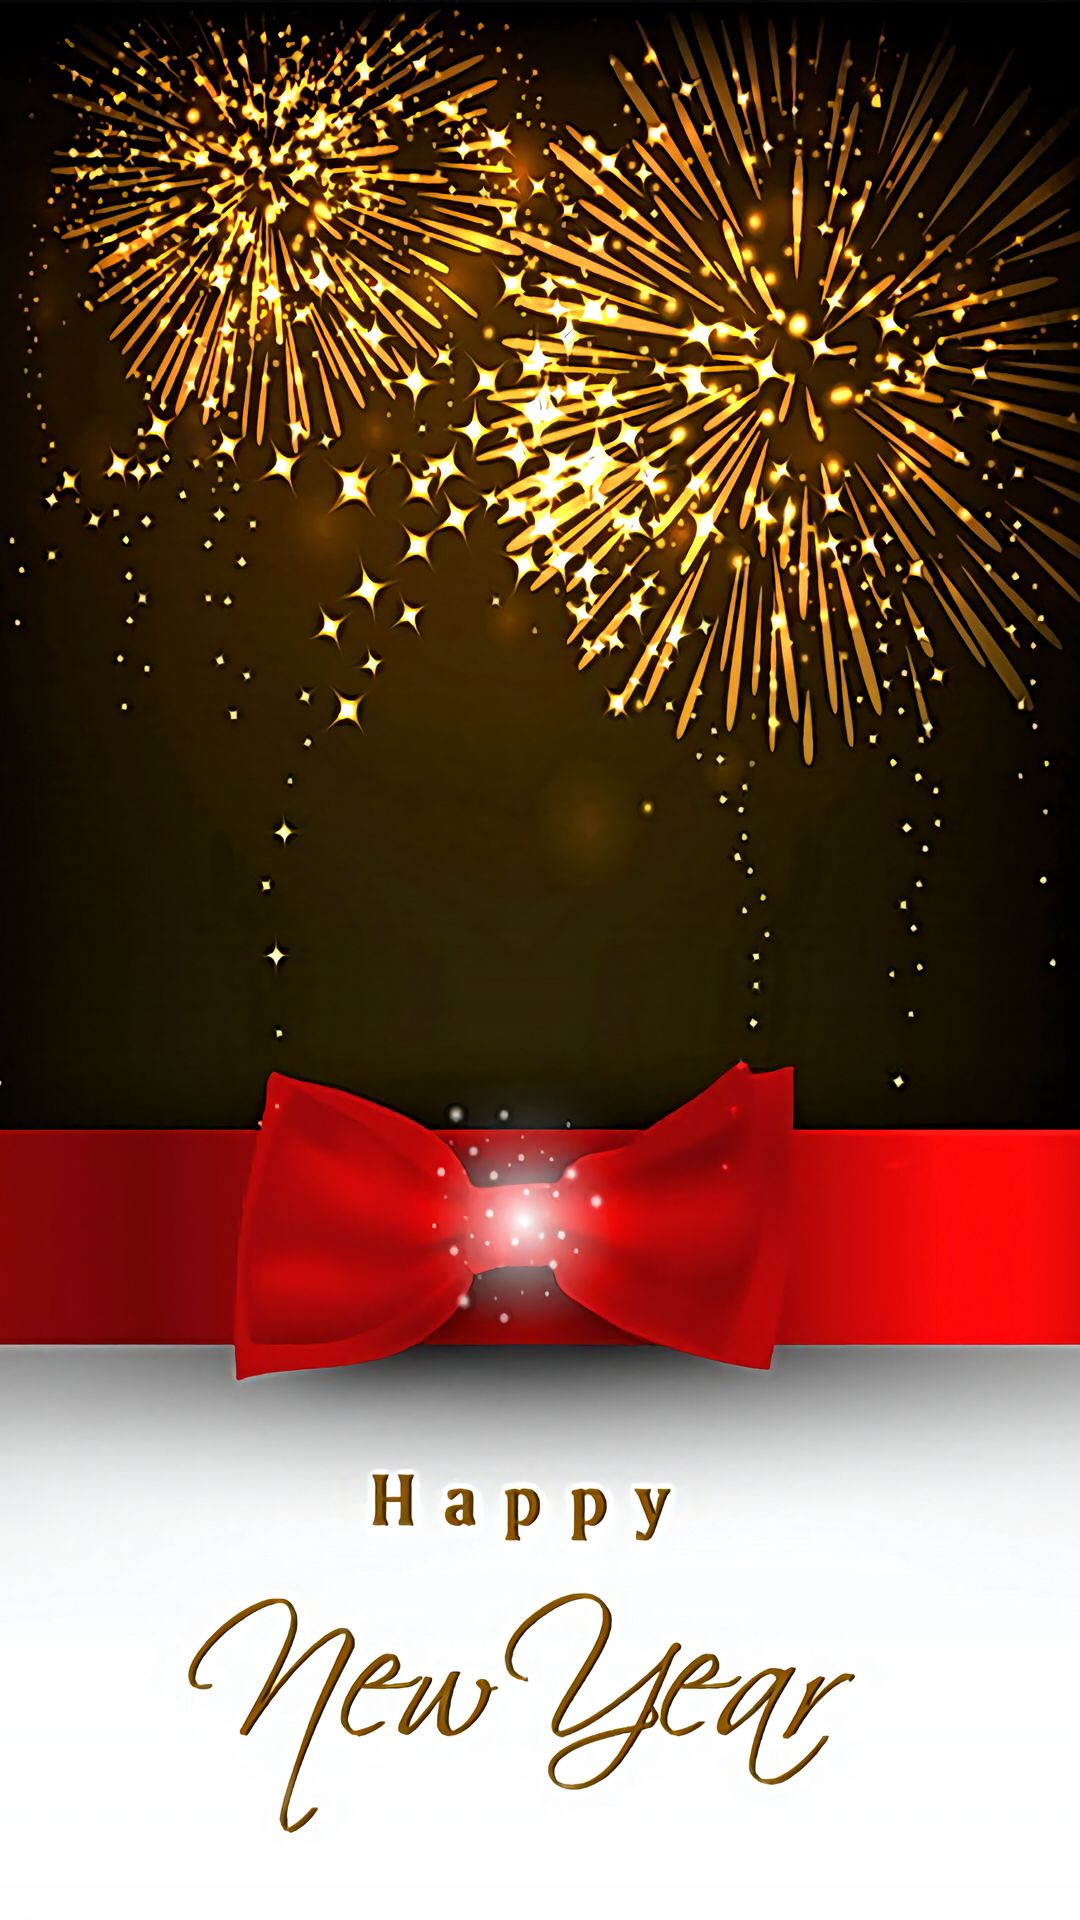 Happy new year holiday greetings pinterest happy new year egifter greeting card kristyandbryce Images